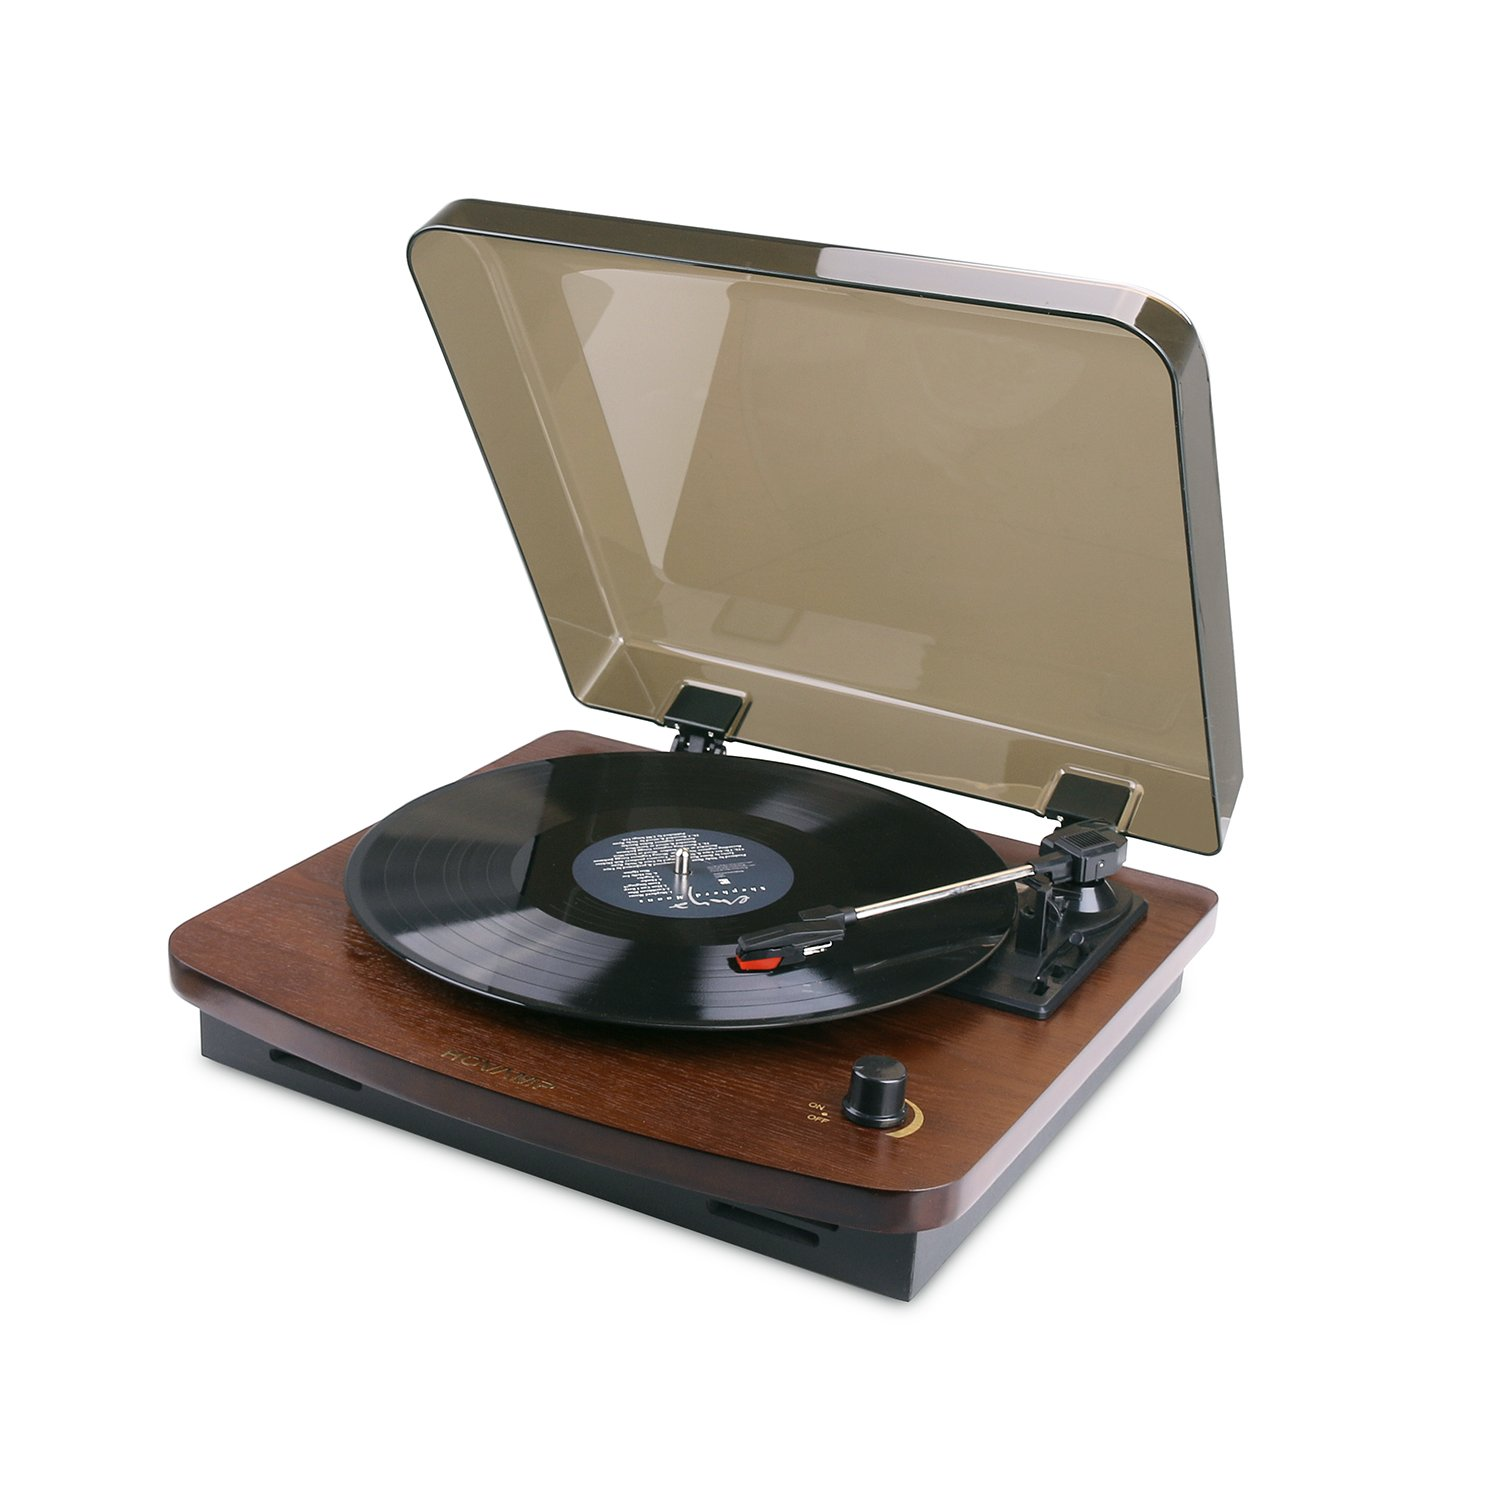 HOVAMP 3-Speed Turntable with Built-in Stereo Speakers RCA Output, Vintage Style Record Player - Coffee